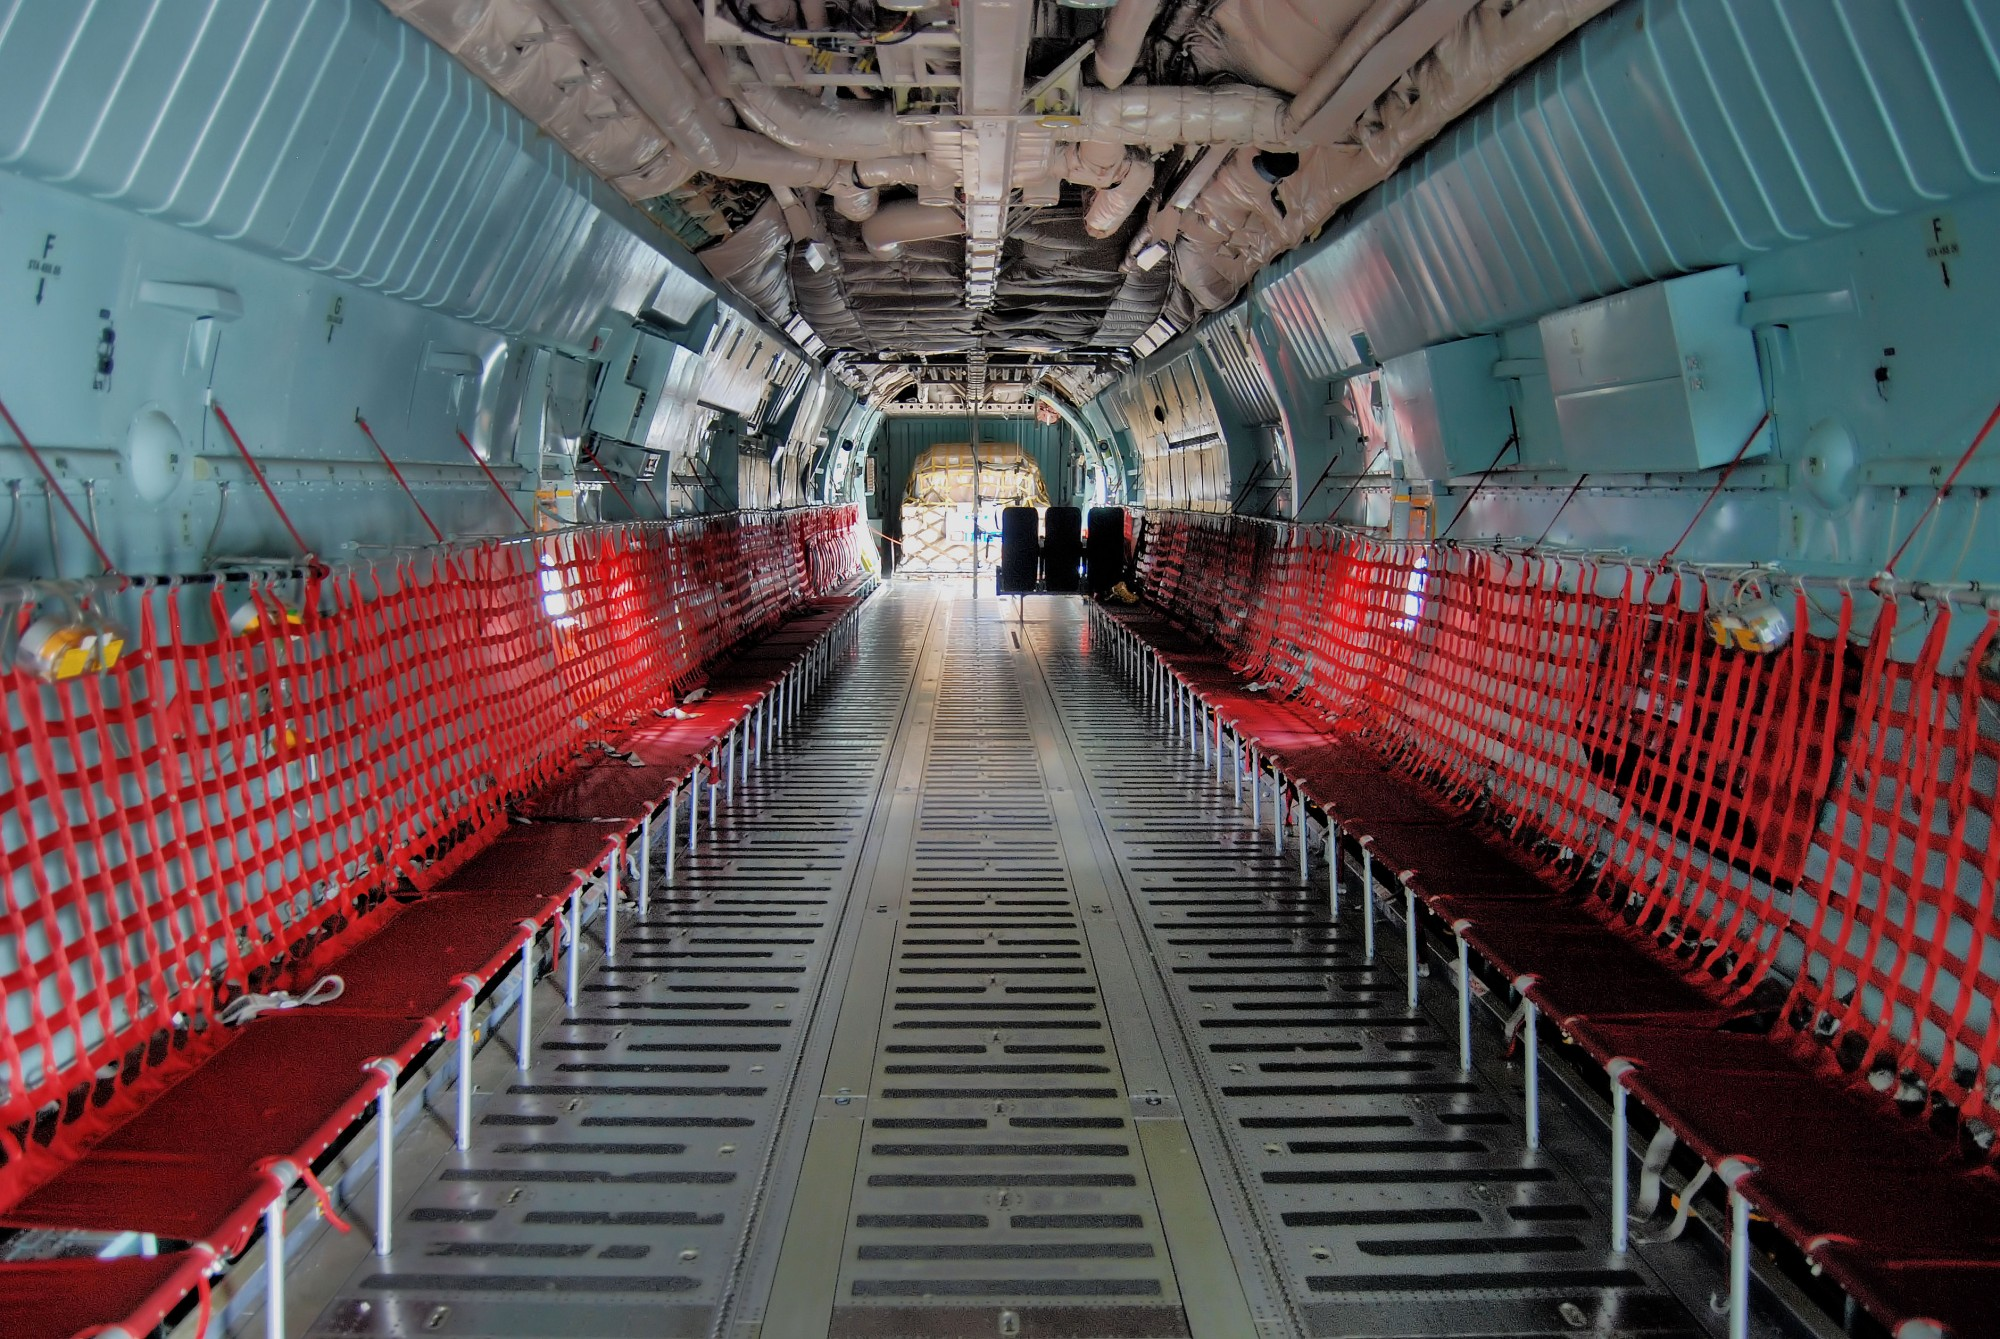 C-141B Starlifter - Air Mobility Command Museum